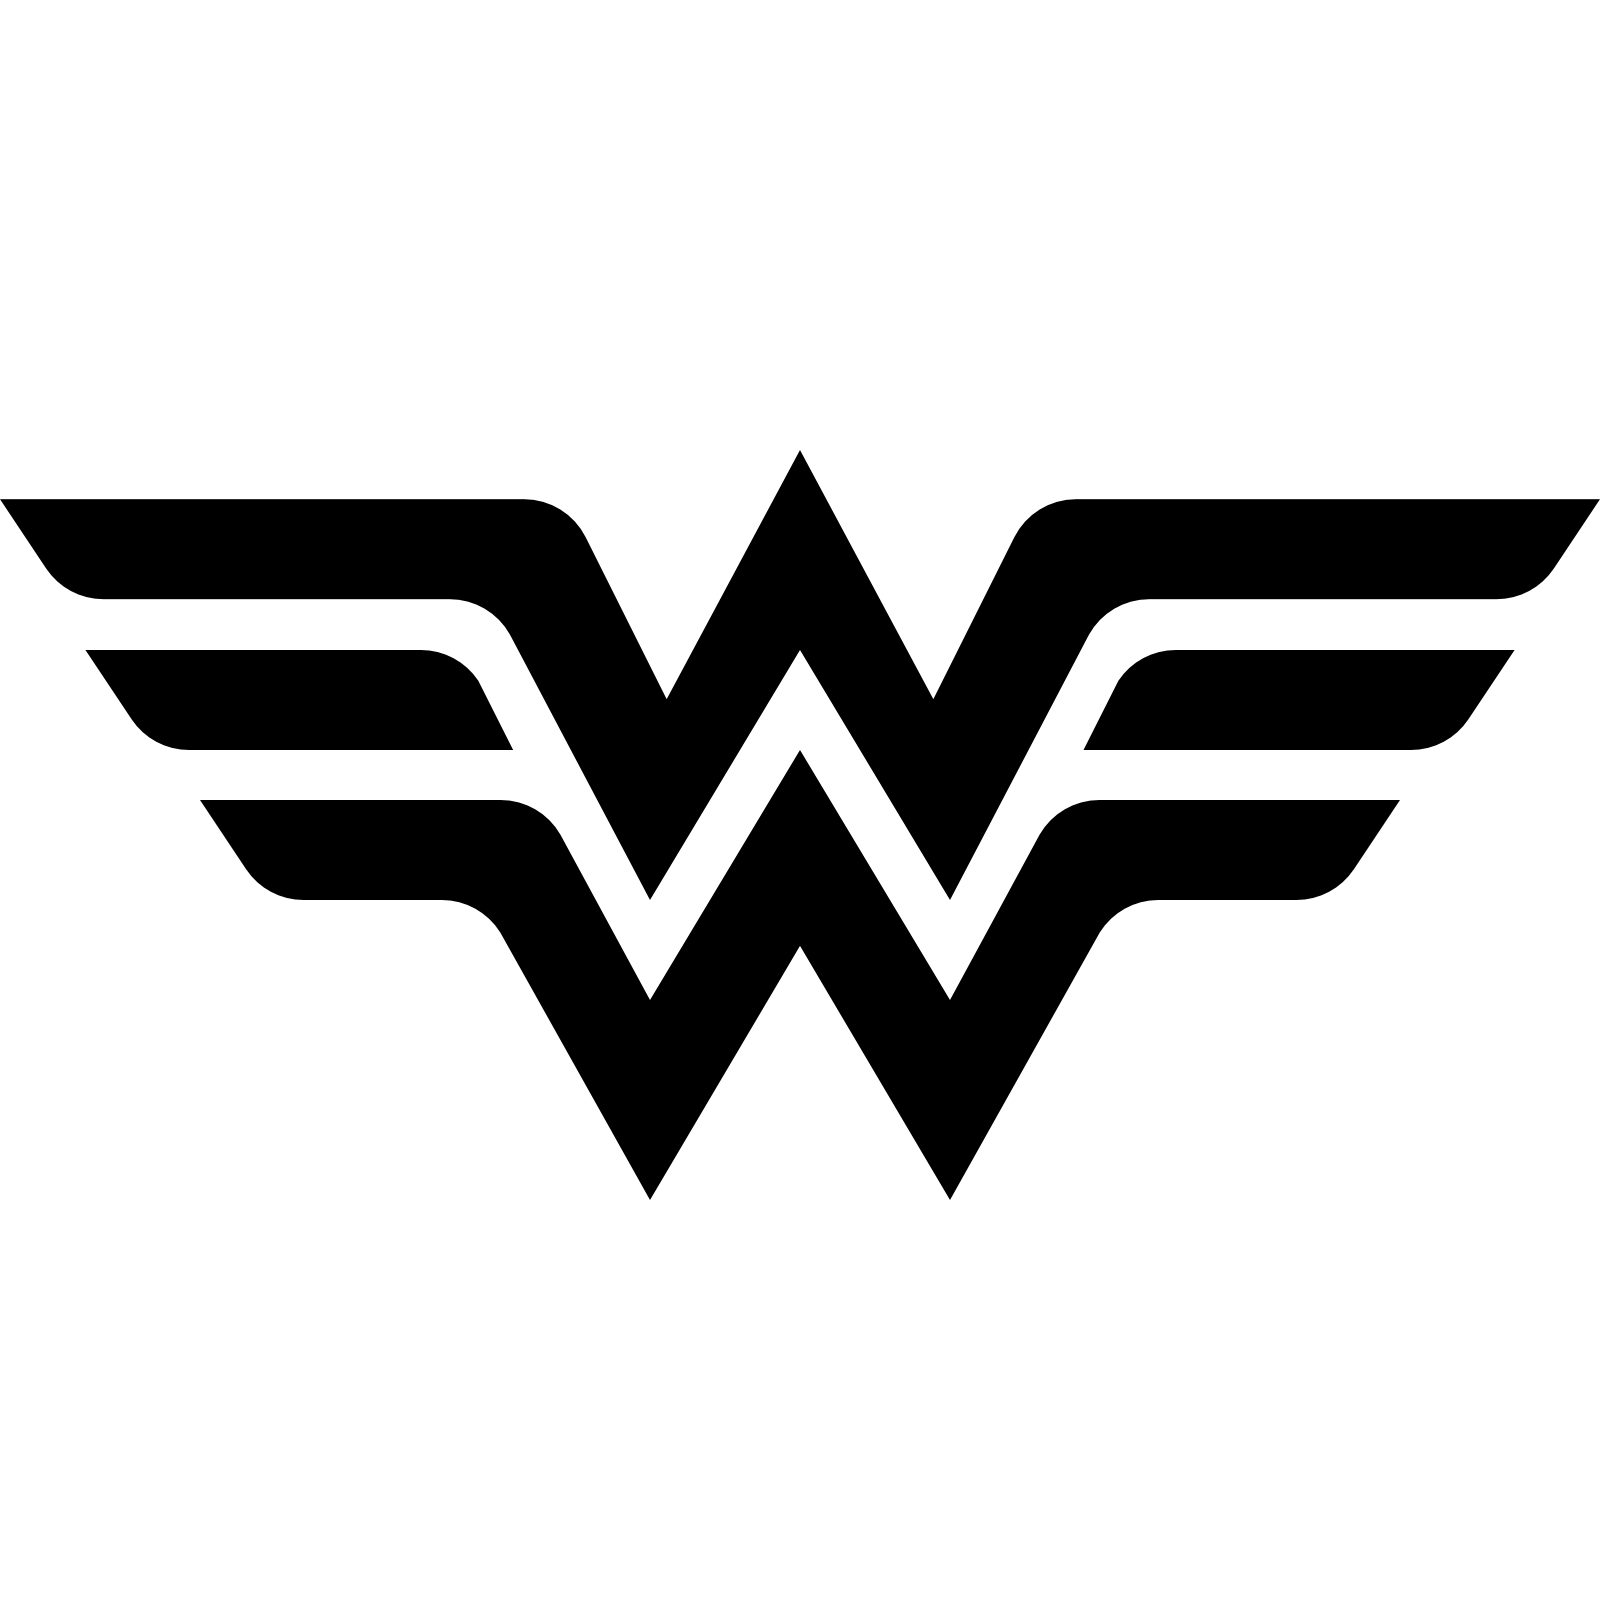 Wonder Woman Logo Silhouette.